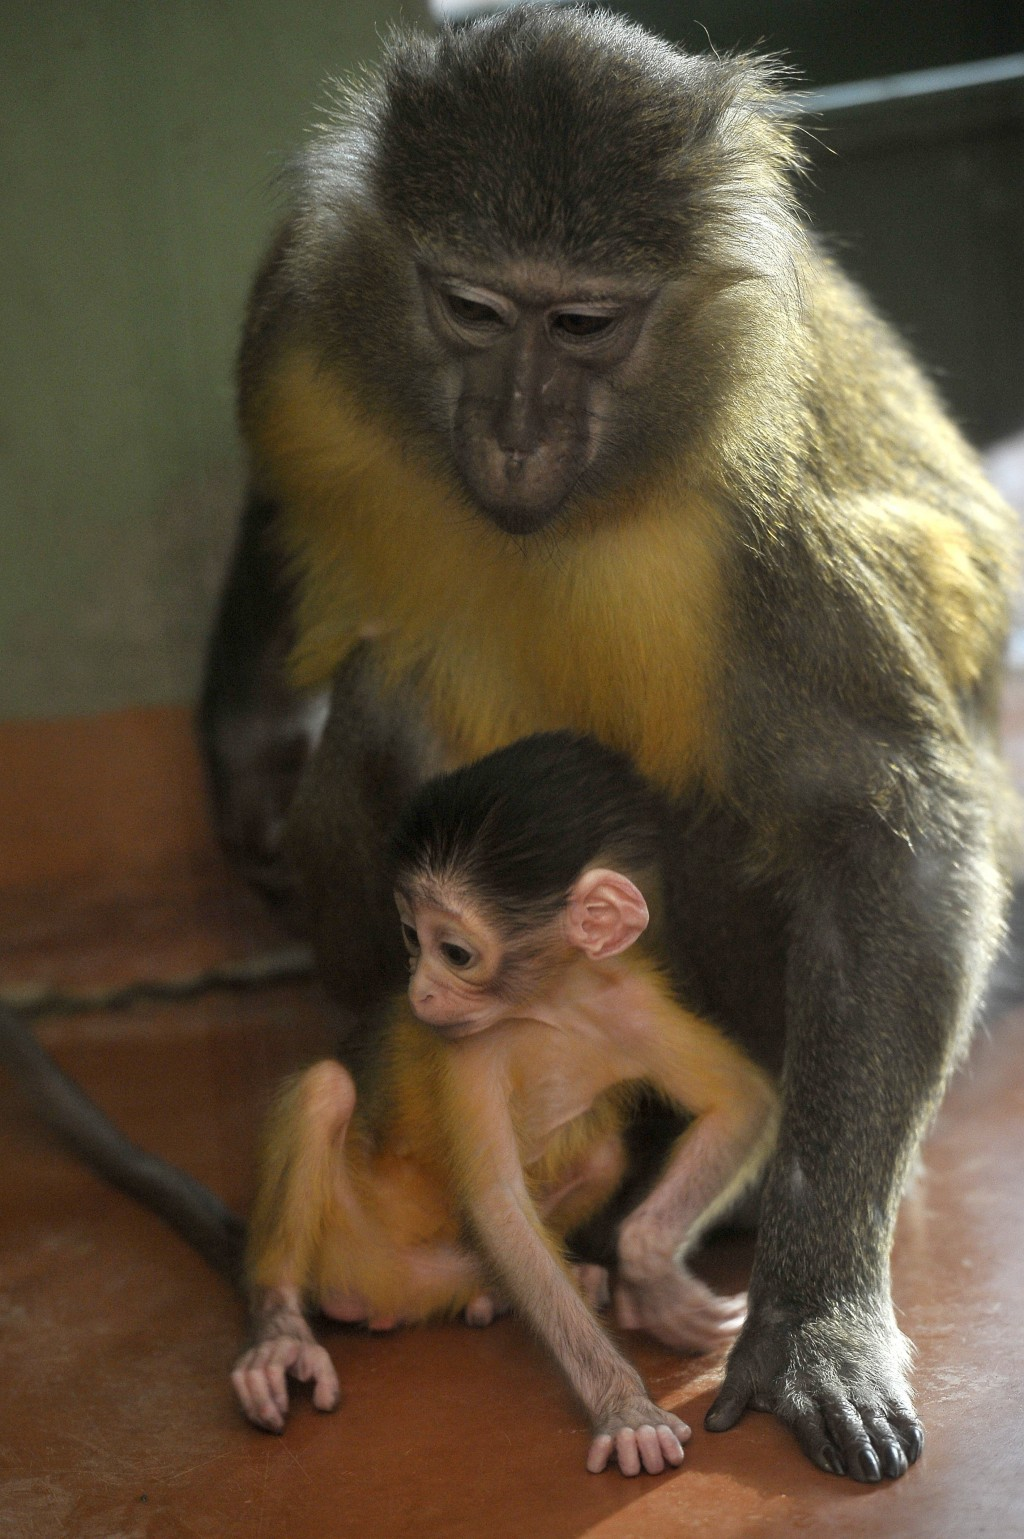 Friday, November 9, 2018 photo, a golden-bellied mangabey with her newborn cub at their enclosure in the Budapest Zoo, Hungary. The baby monkey was bo